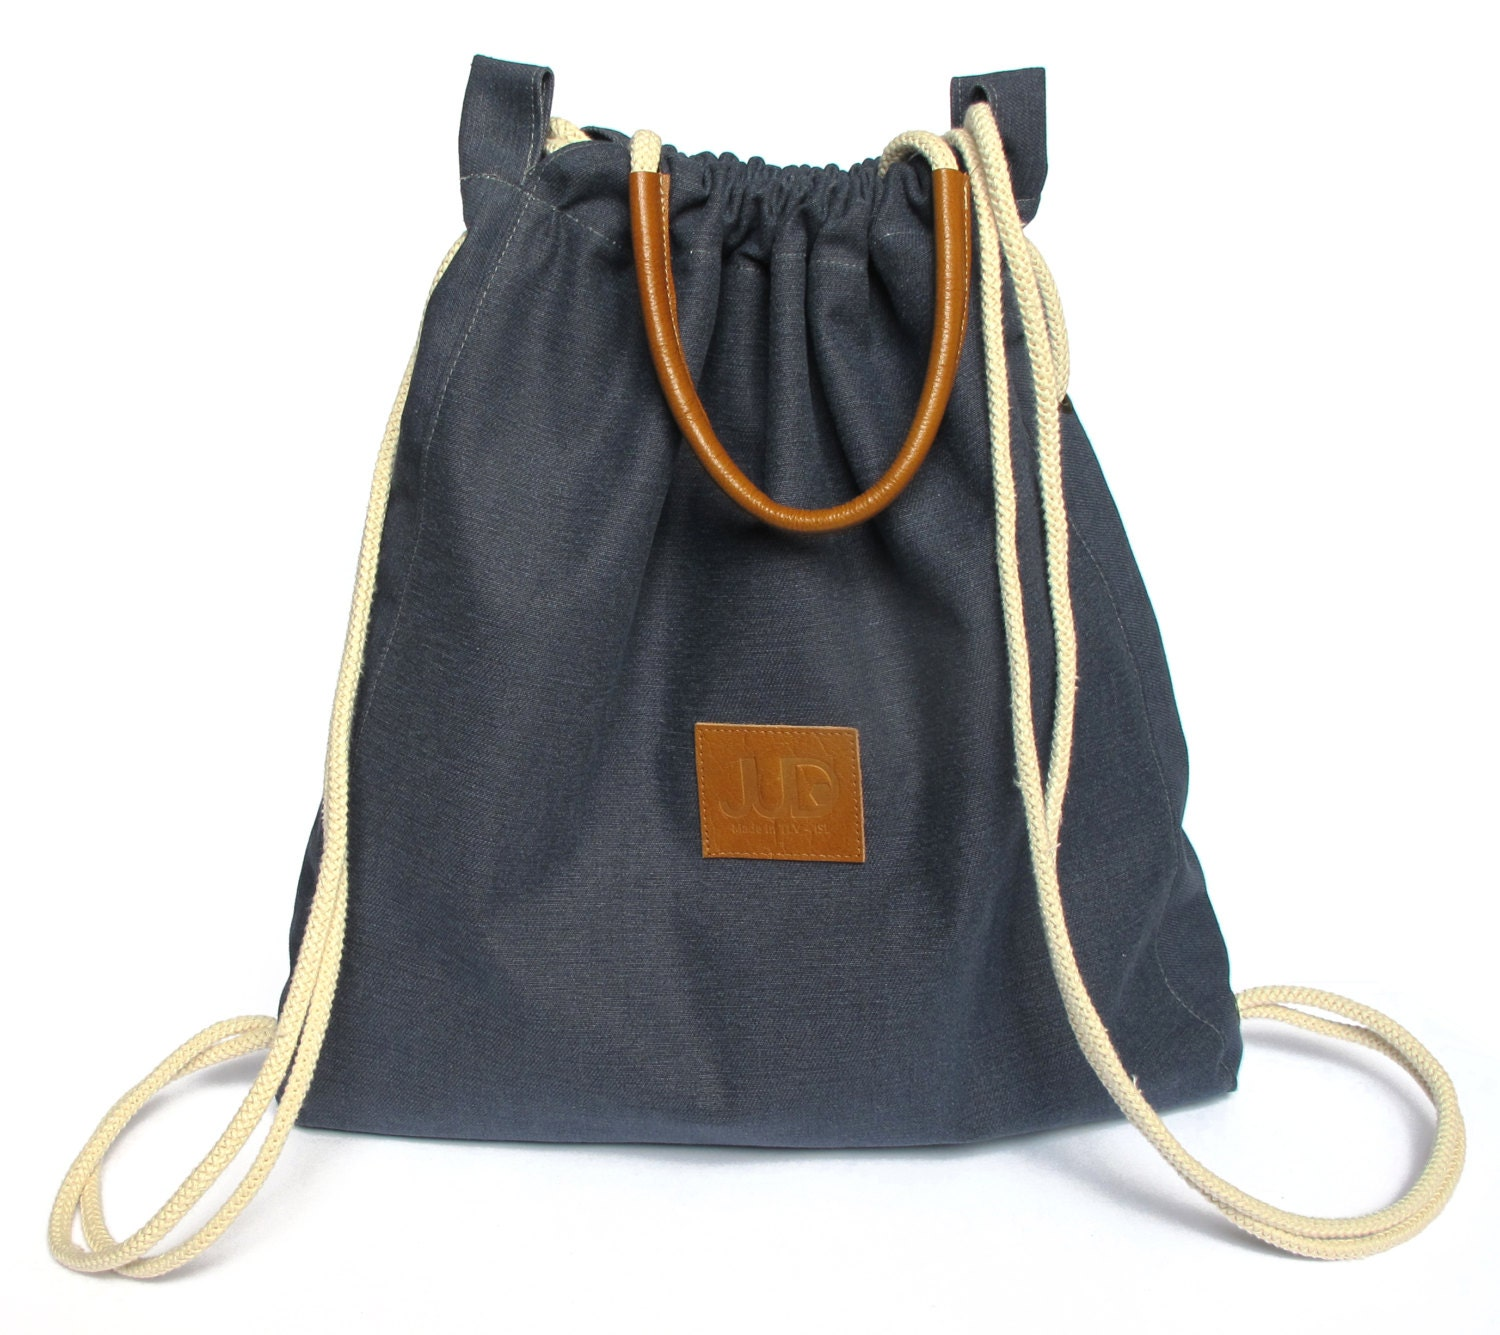 Navy backpack purse multi sack bag SALE Navy tote bag gold